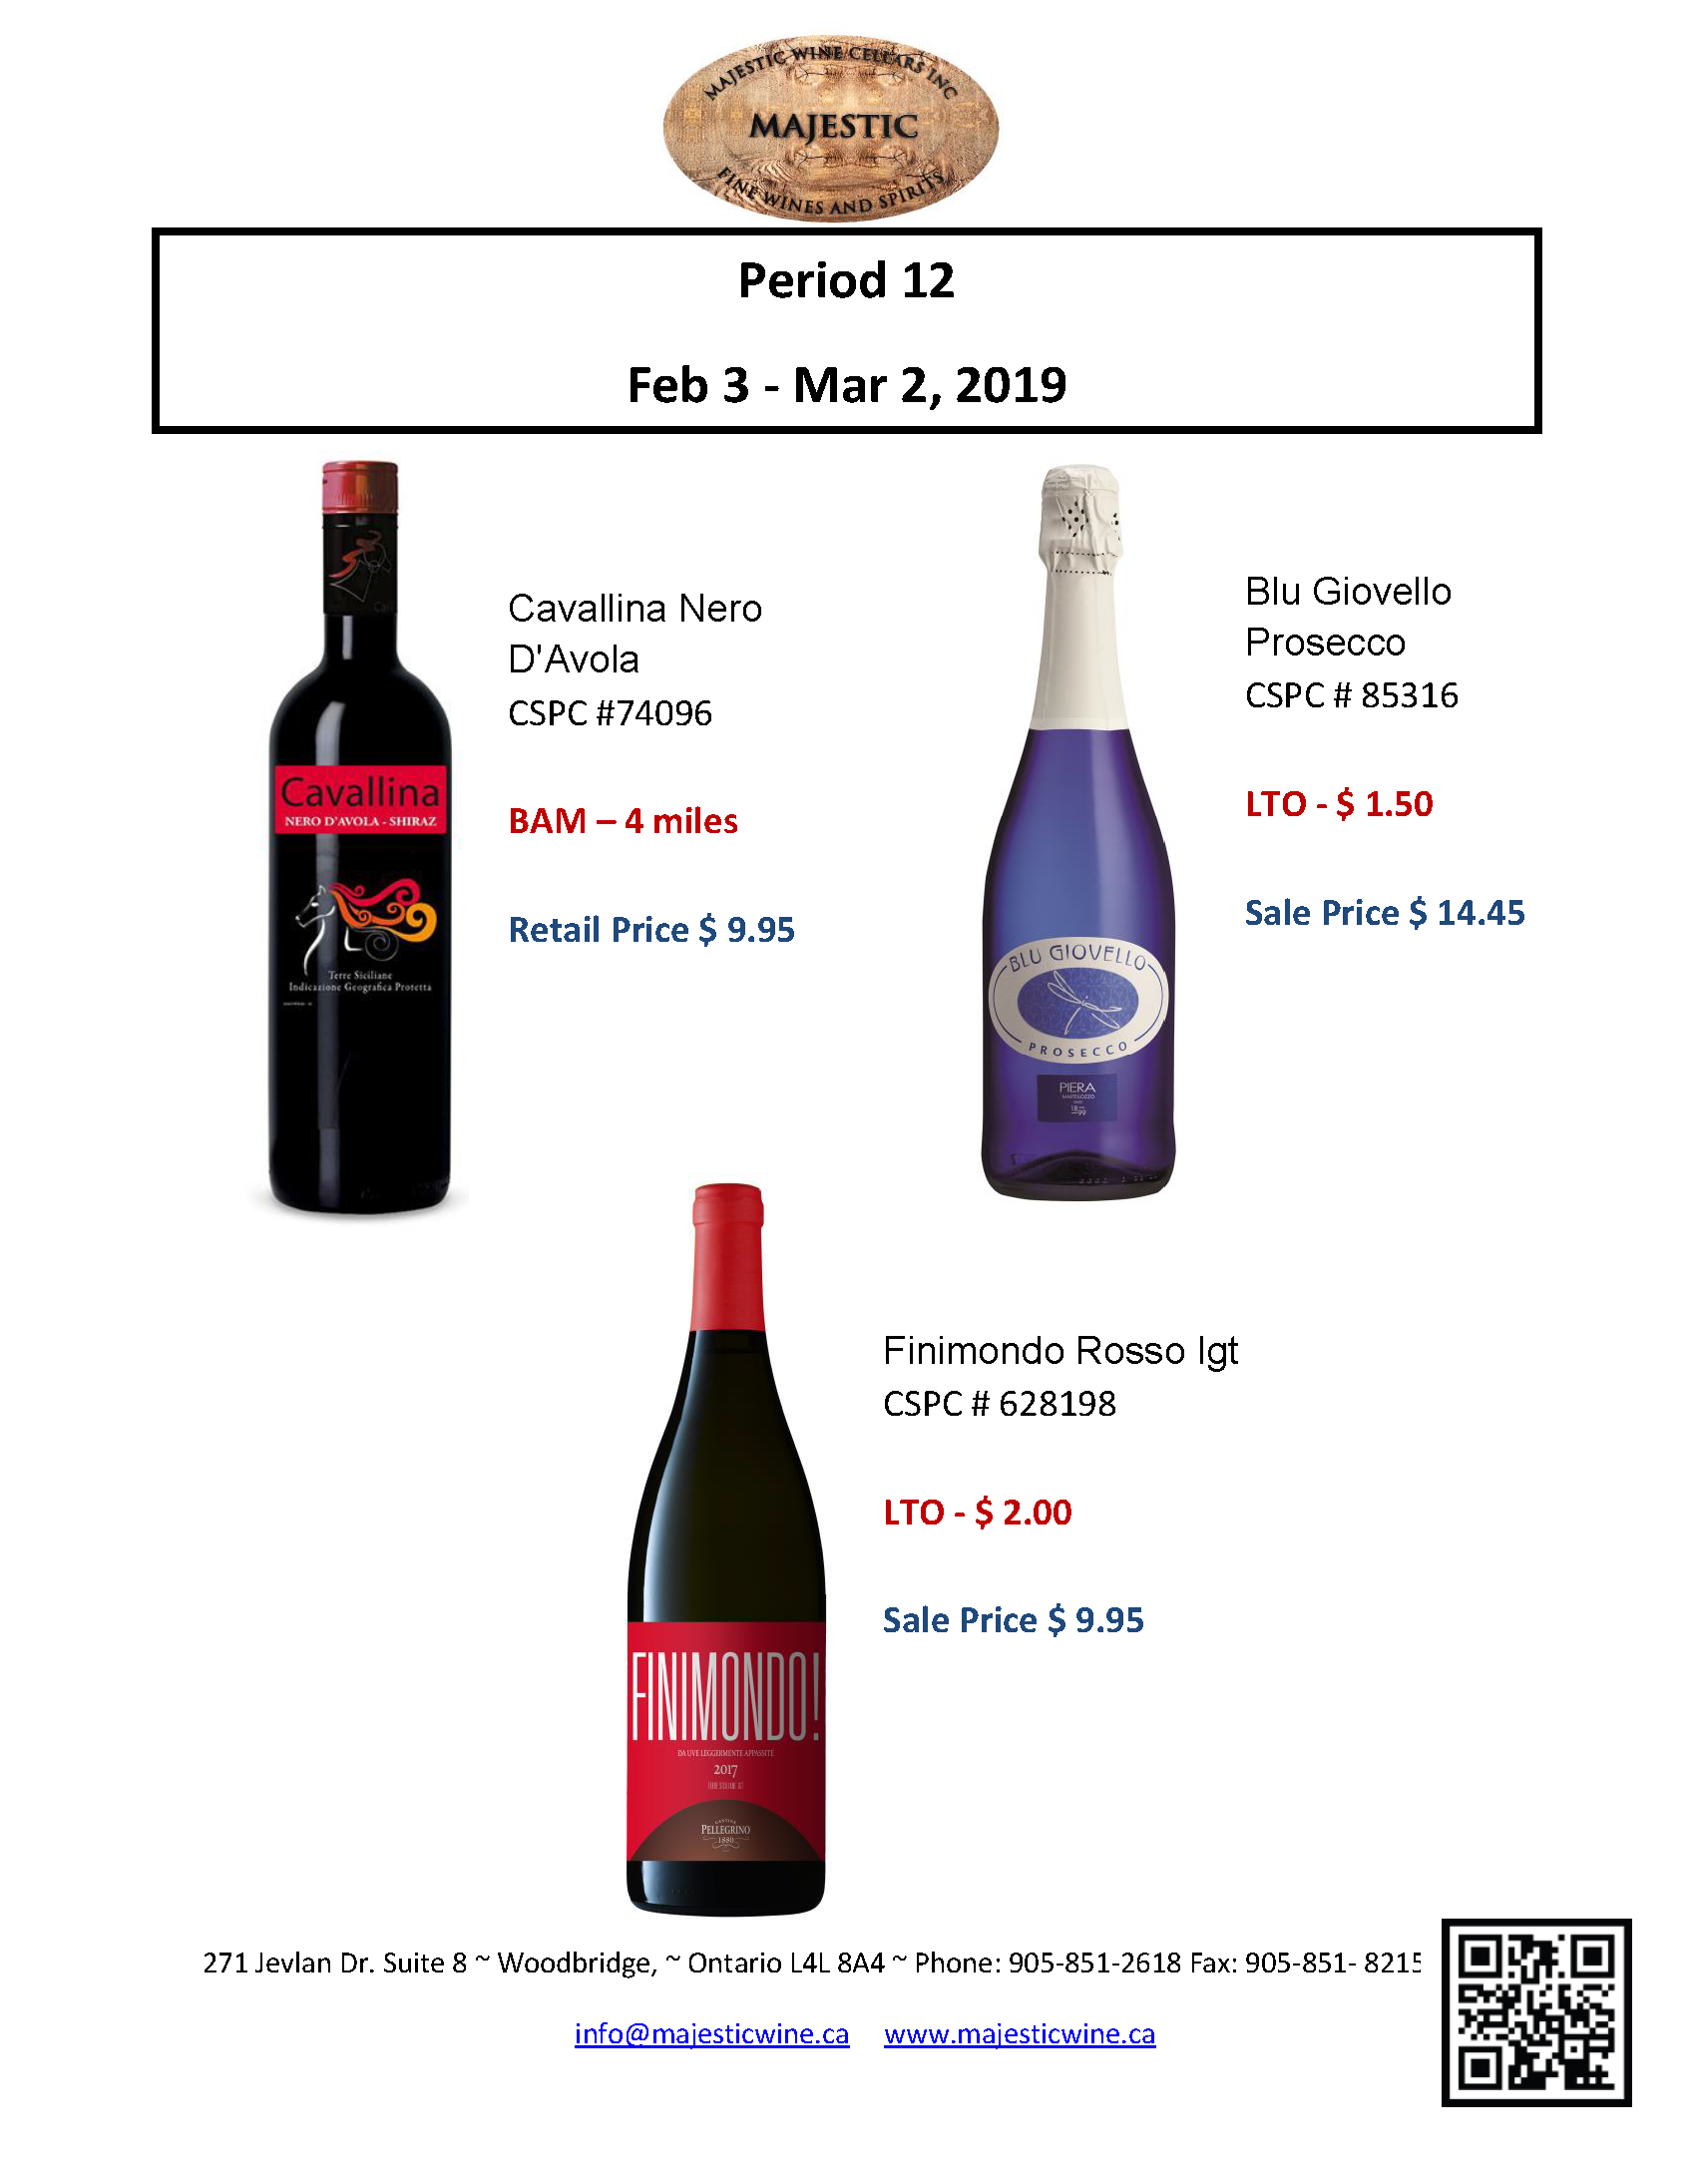 Period 12: February 3rd - March 3rd Promotion